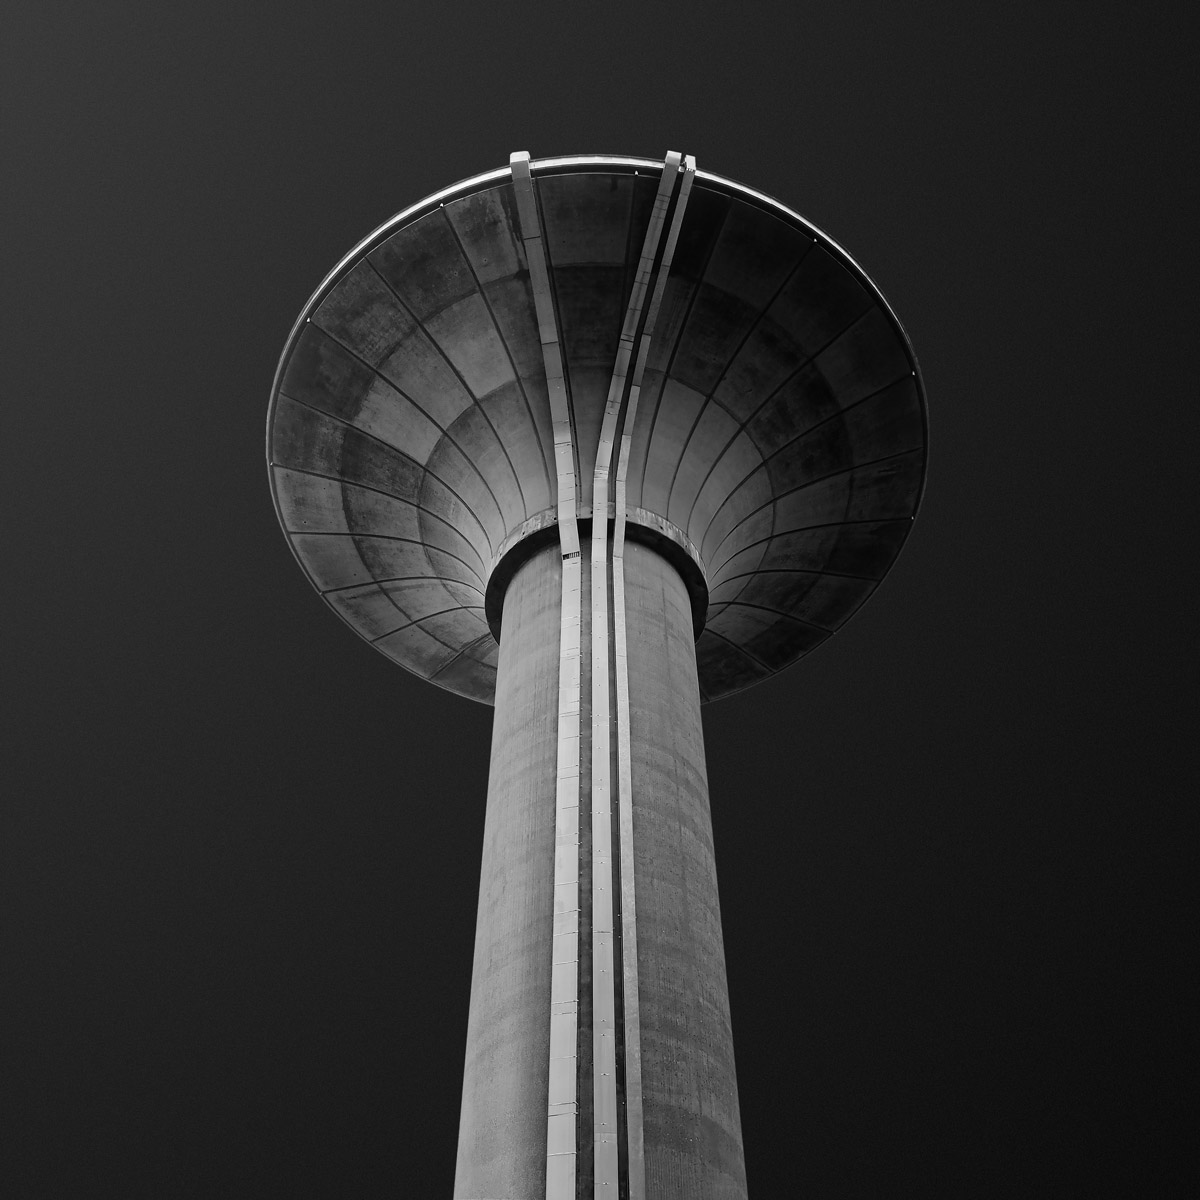 Water towers of Luxembourg : A Pictographic Study | Gediminas Karbauskis